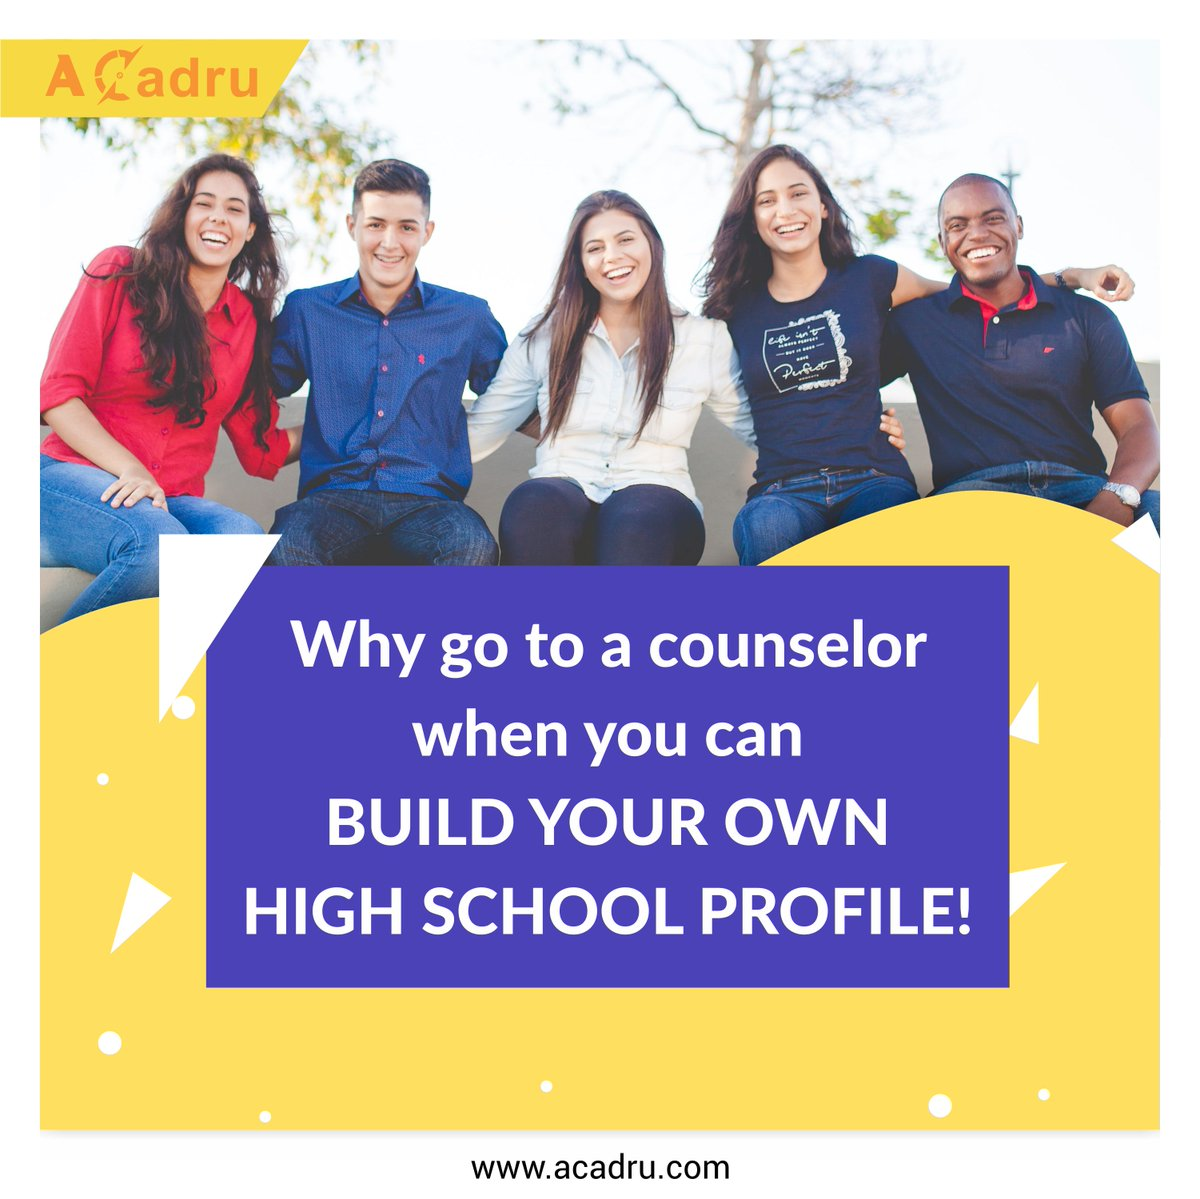 #aCadru is the most powerful resource for #students to build their profile as they start thinking of competitive #collegeadmissions, new jobs, acquire #21stcenturyskills or simply being ready for future.  #career #FutureReady #profilebuilding #careercounselor #StudentLivesMatter https://t.co/j6hUAq4myE